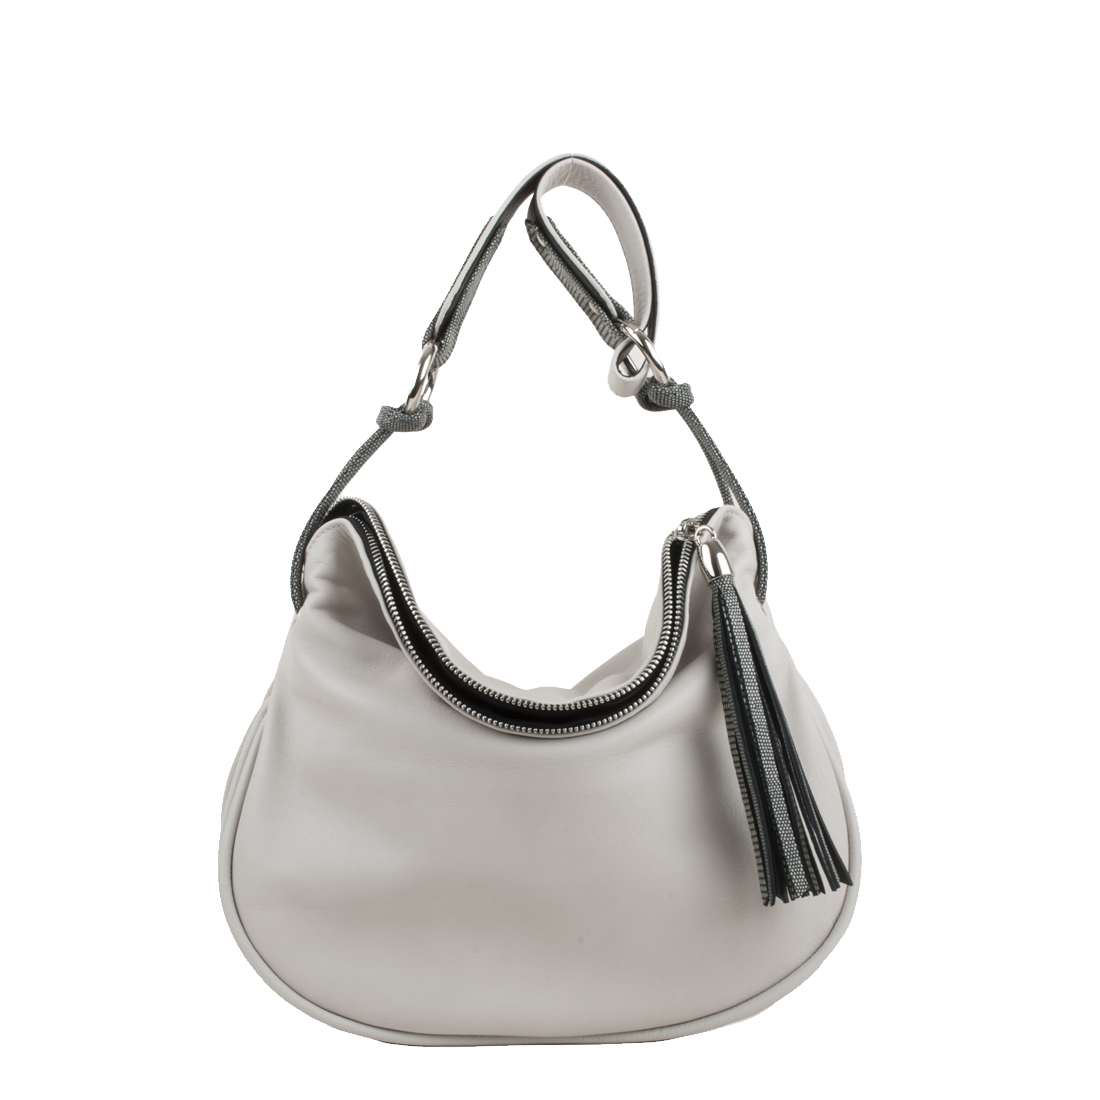 Milly Polvere Leather Shoulder Bag